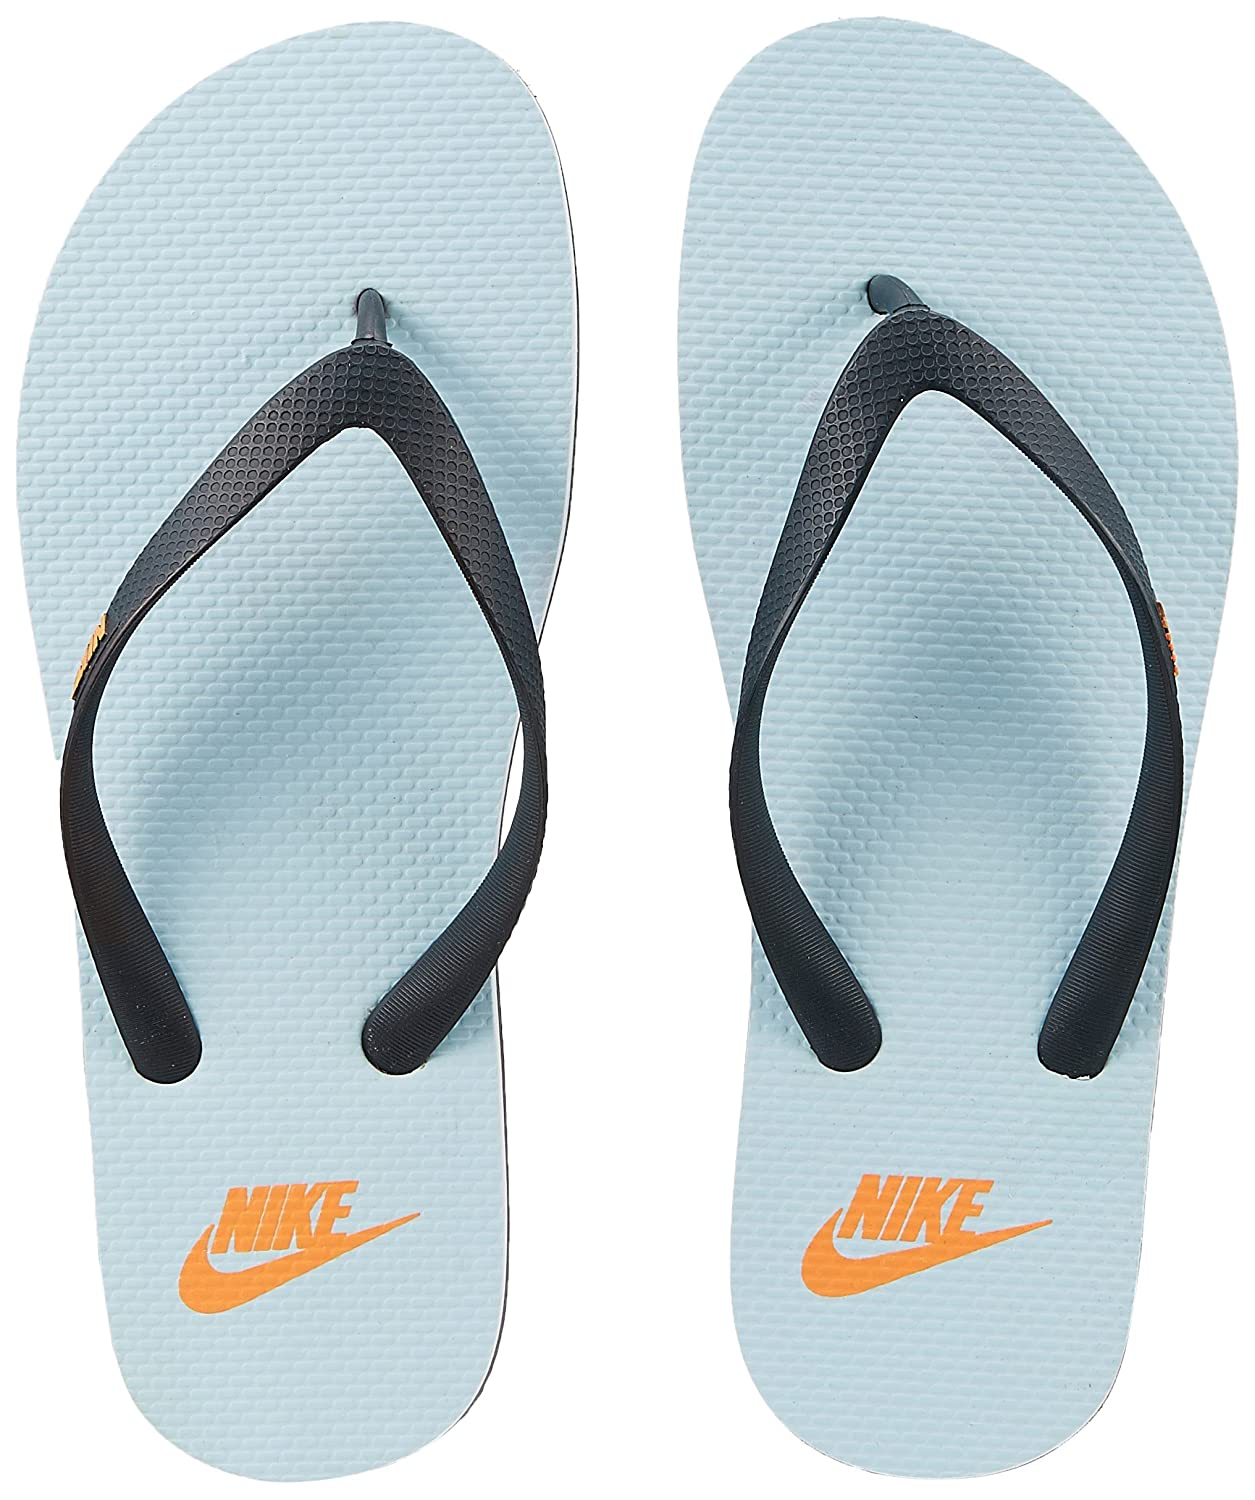 aa0463537f6 Nike Men s Aquaswift Thong Flip Flops Thong Sandals  Buy Online at Low  Prices in India - Amazon.in